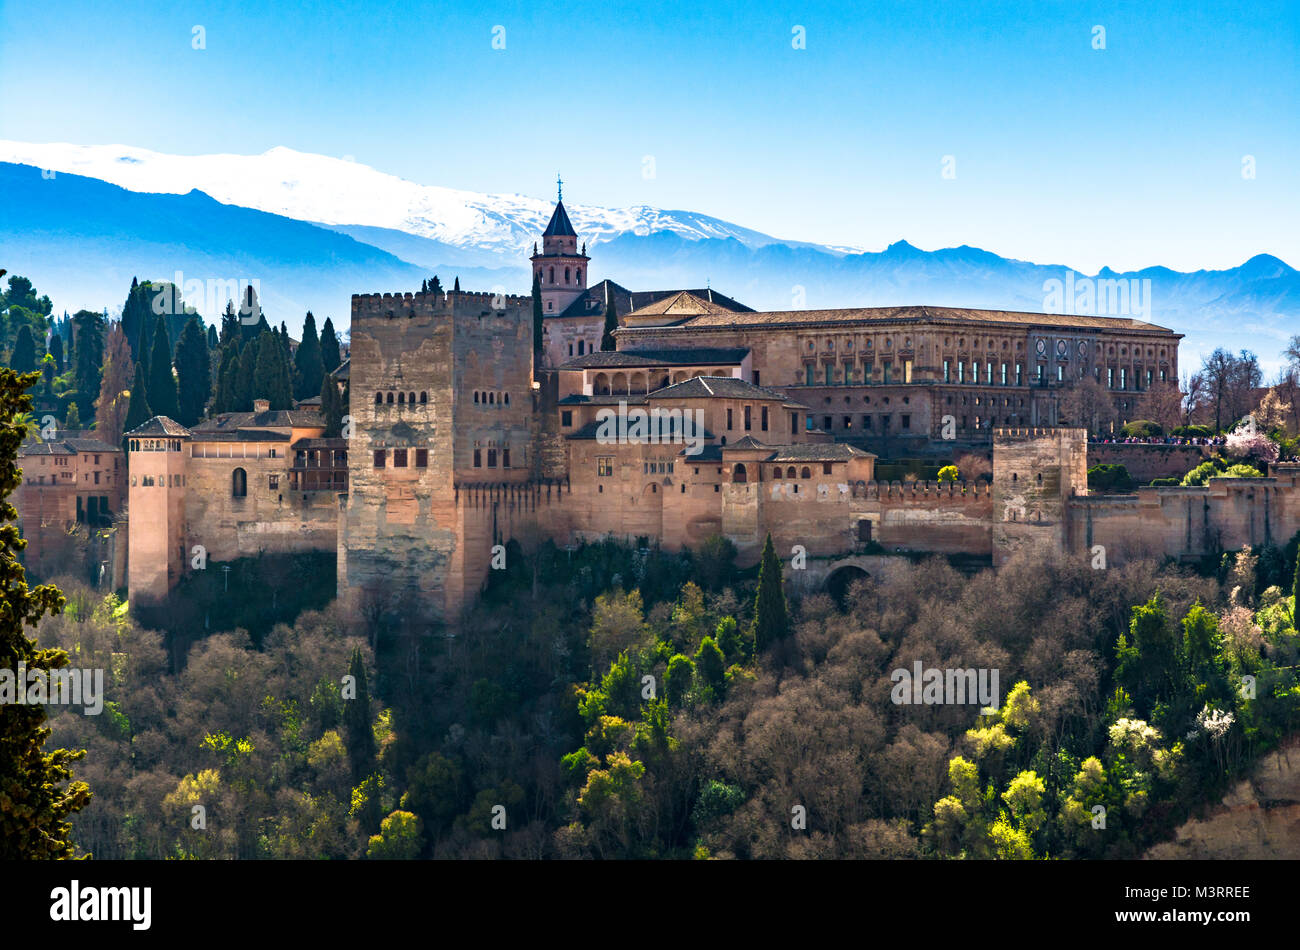 Granada, Spain: The Charles V (Carlos V) royal palace part of the Alhambra palace and fortress complex. Stock Photo